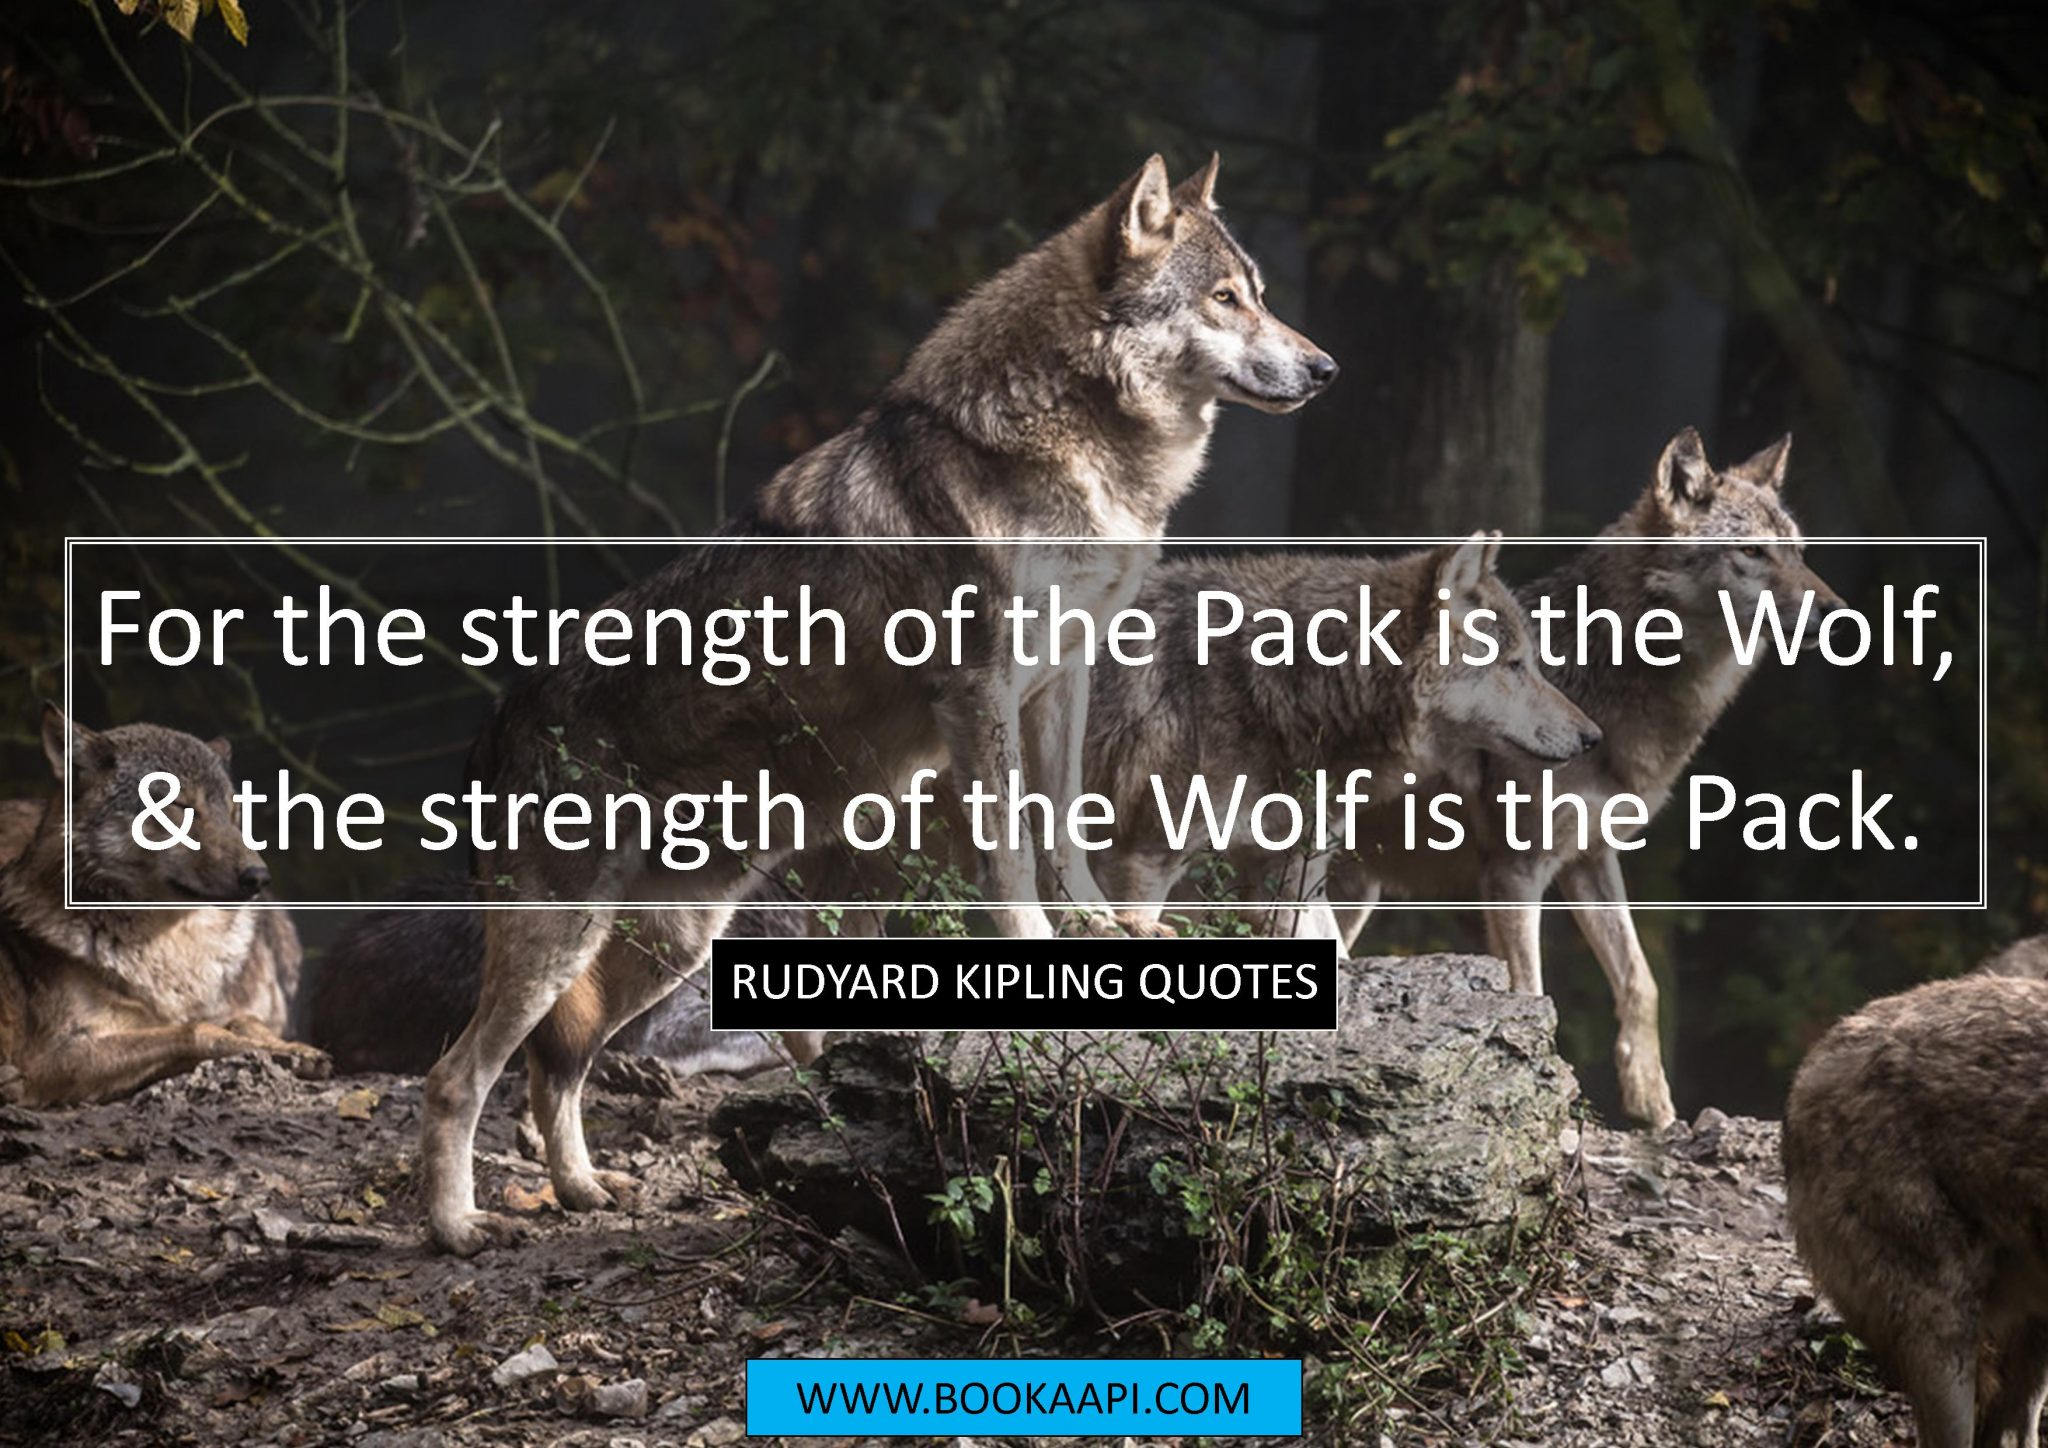 Jungle Book Quotes Mesmerizing 9 Amazing Rudyard Kipling Quotes From The Jungle Book